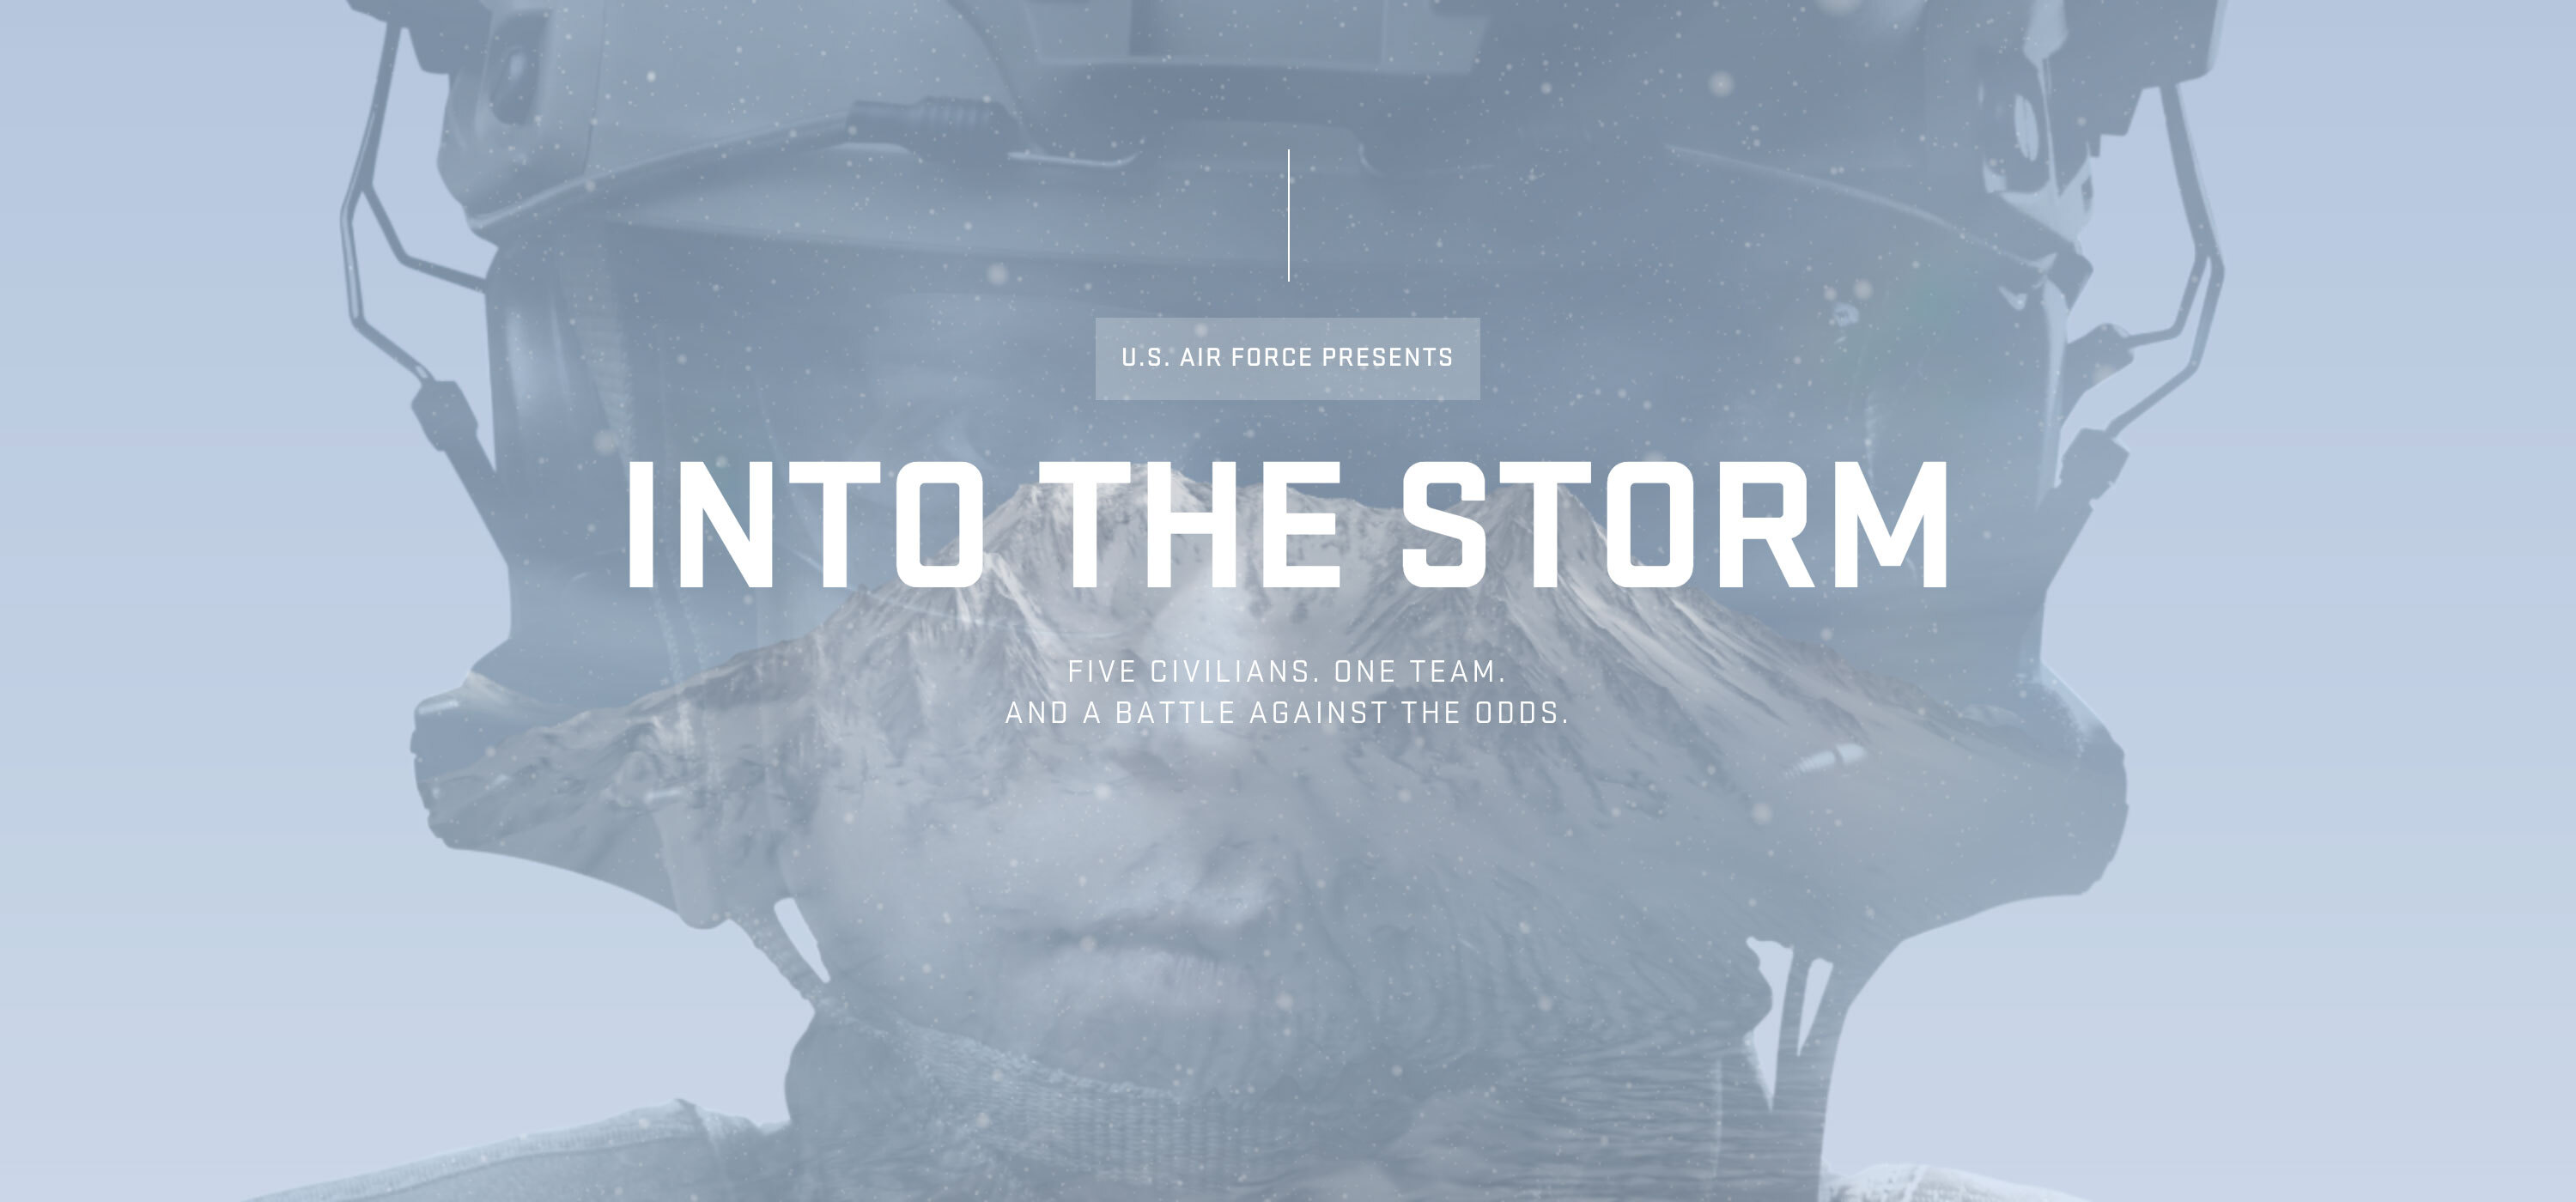 U.S. Air Force 'Into The Storm' by MediaMonks wins Site of the Month March 2021